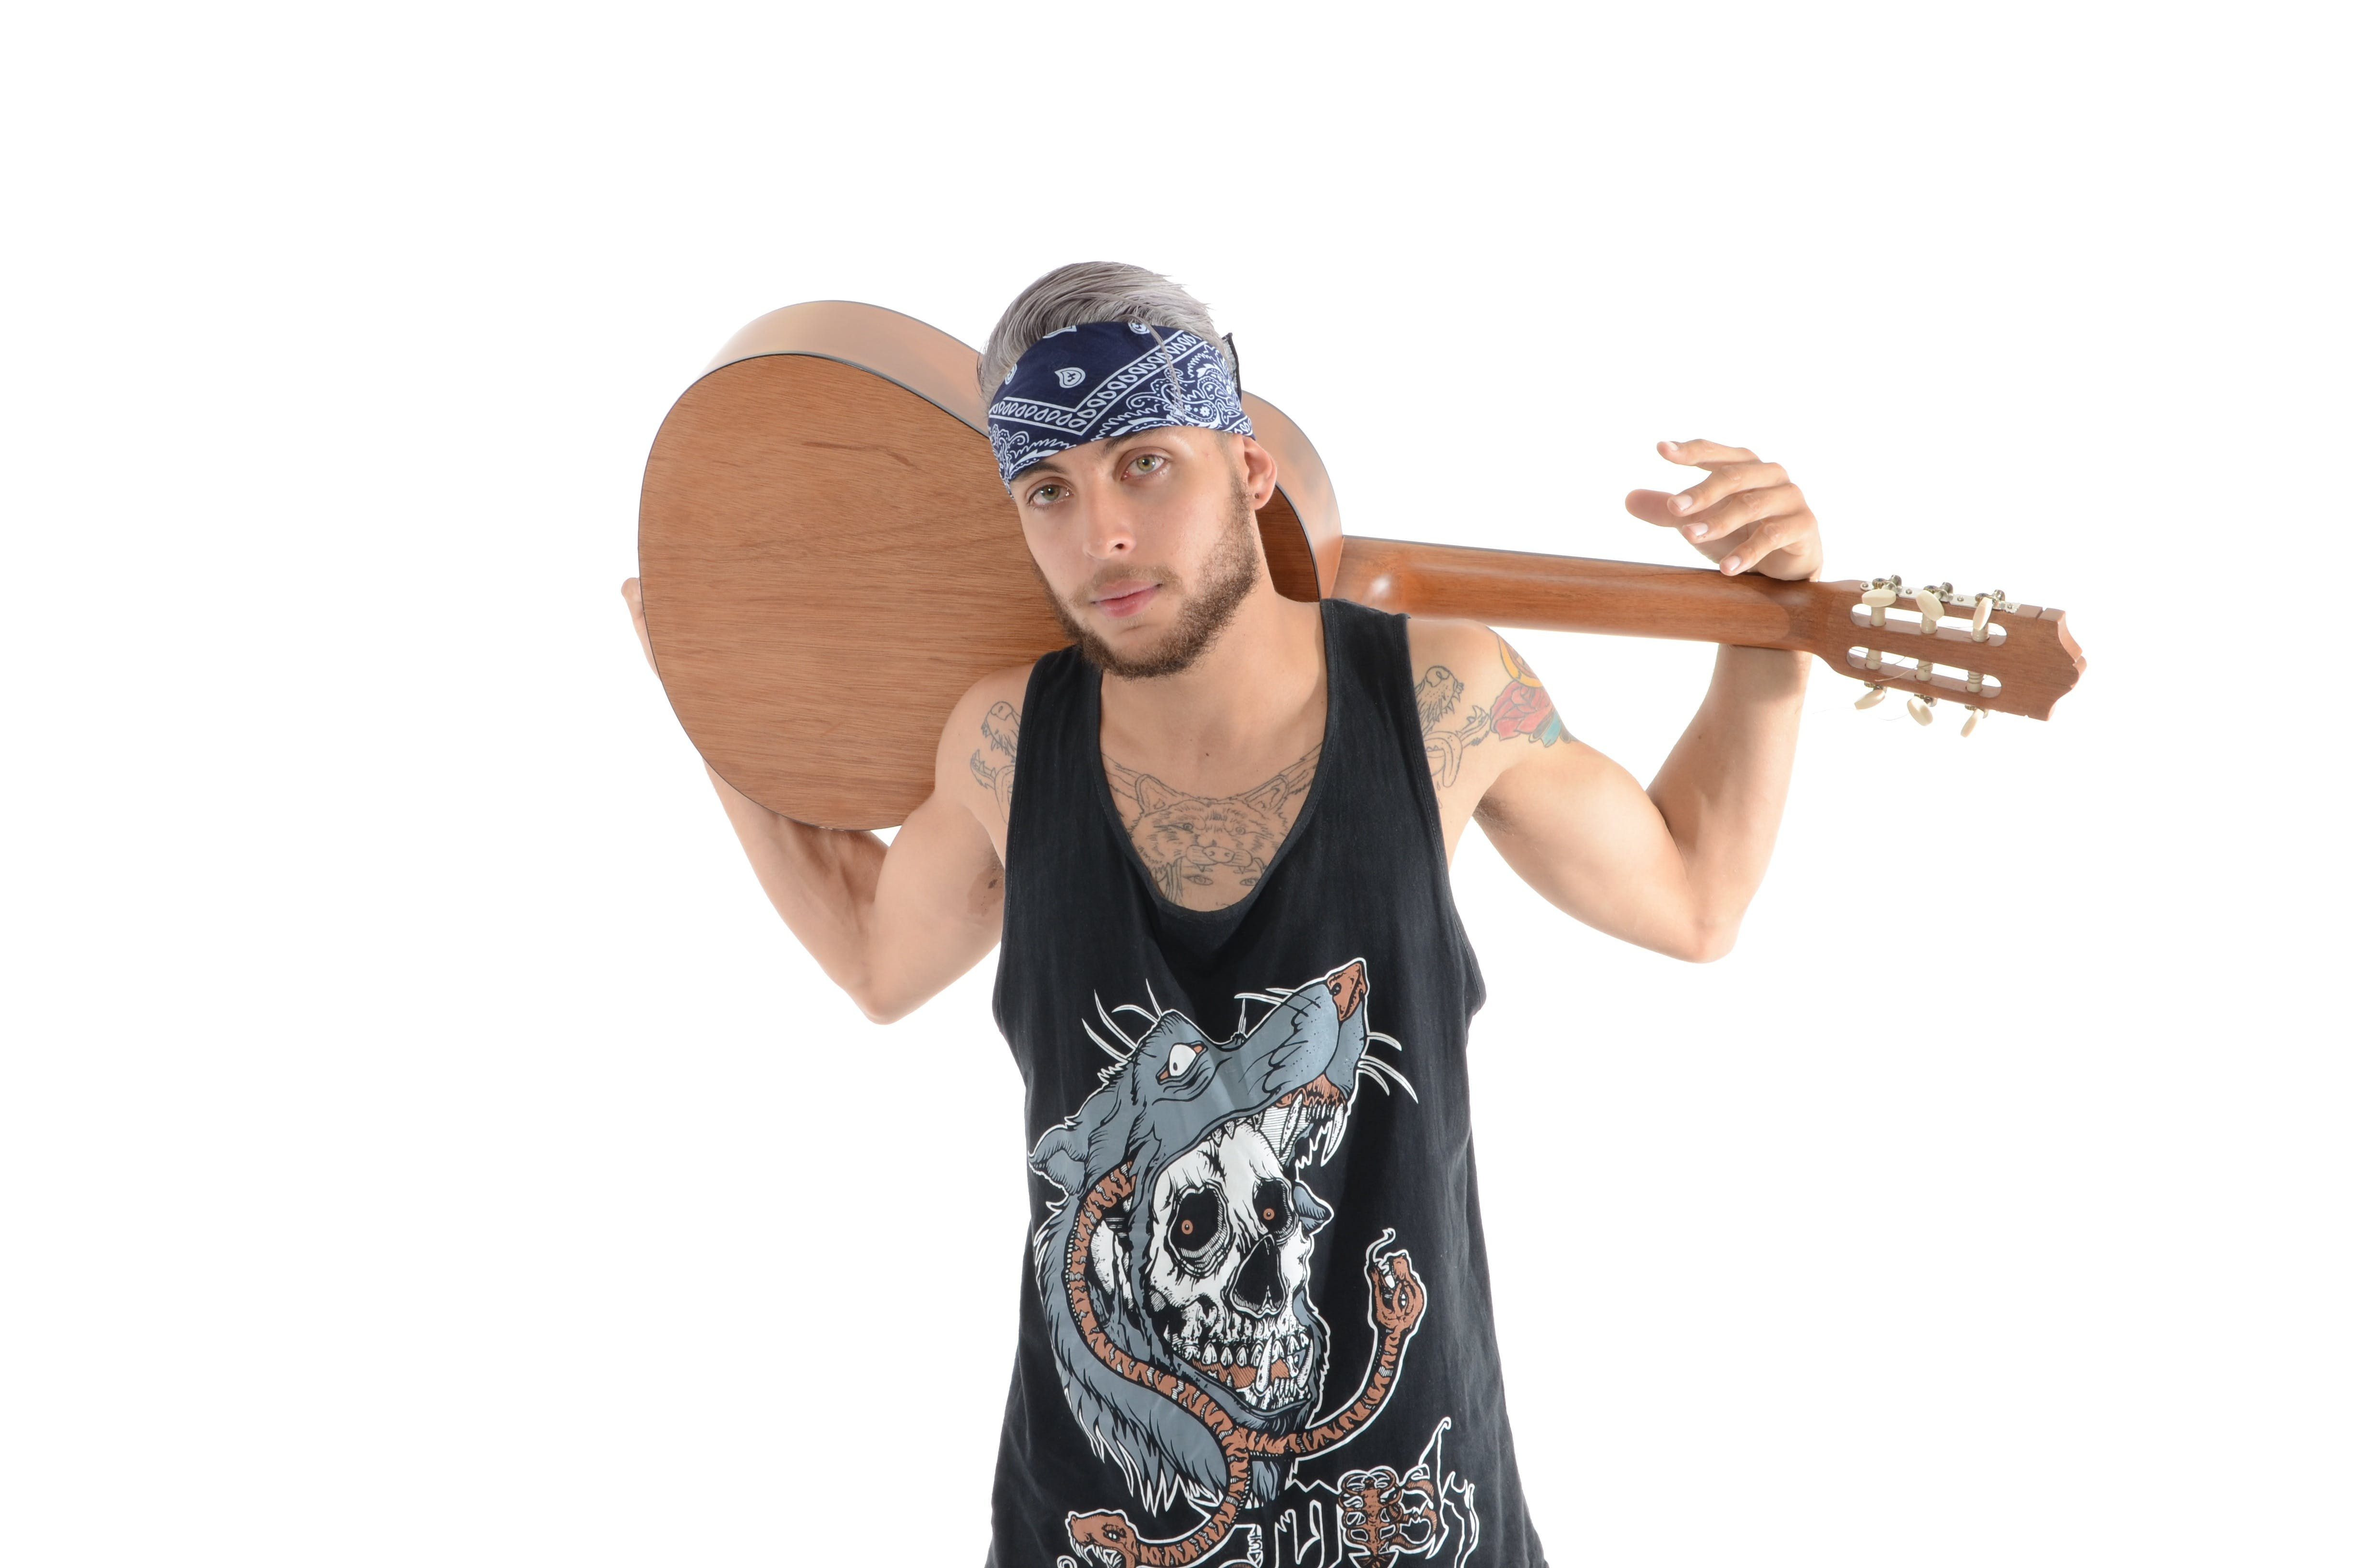 Man in Black and Grey Tank Top Carrying Brown Classical Guitar